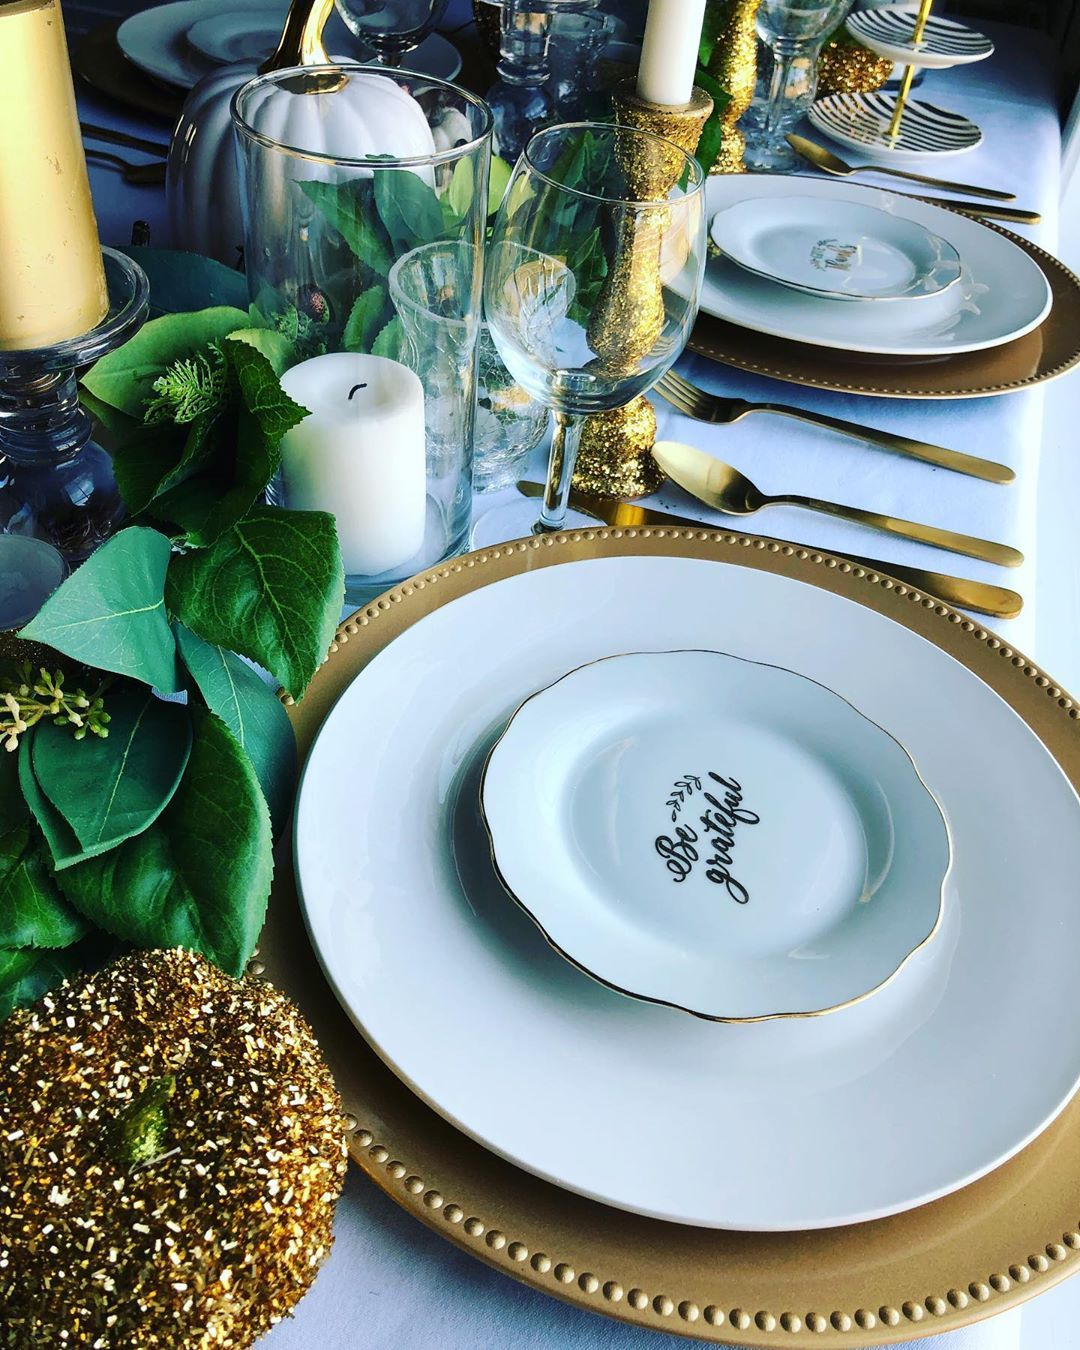 Last year's fall tablescape. New tablescape coming soon!